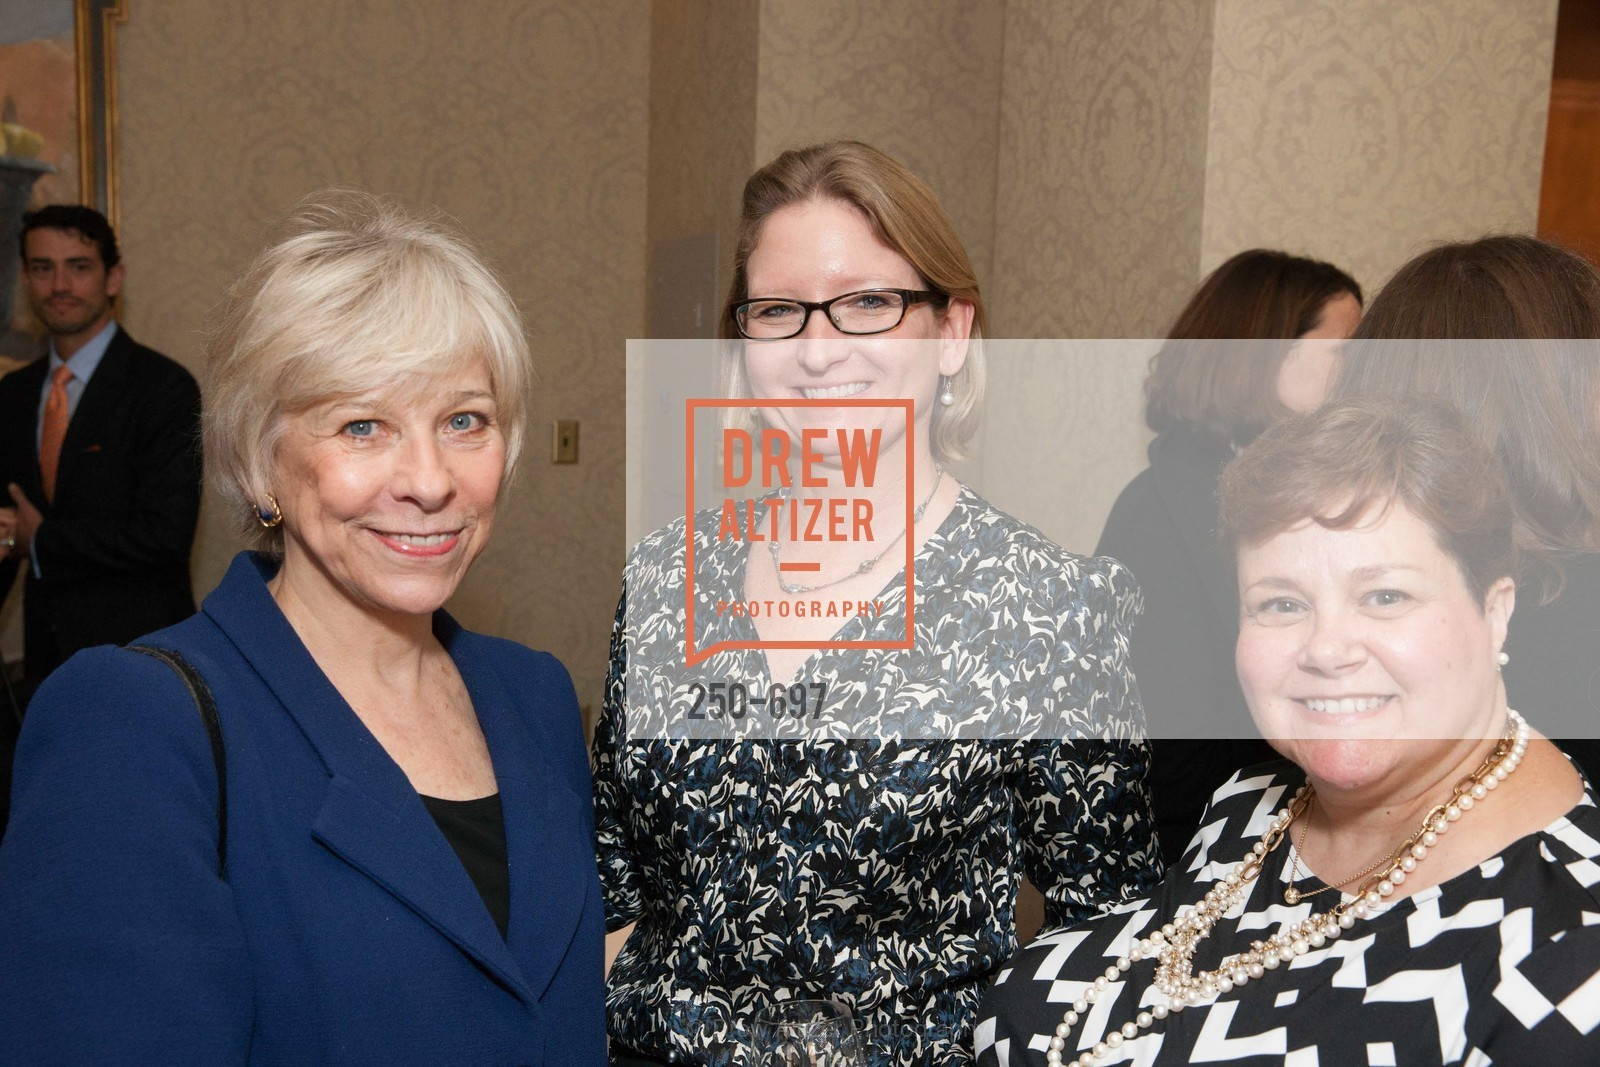 Charley Campbell, Courtney Jones, Tammy Brotthill, JUNIOR LEAGUE OF SAN FRANCISCO's WATCH Luncheon, US, May 5th, 2015,Drew Altizer, Drew Altizer Photography, full-service agency, private events, San Francisco photographer, photographer california